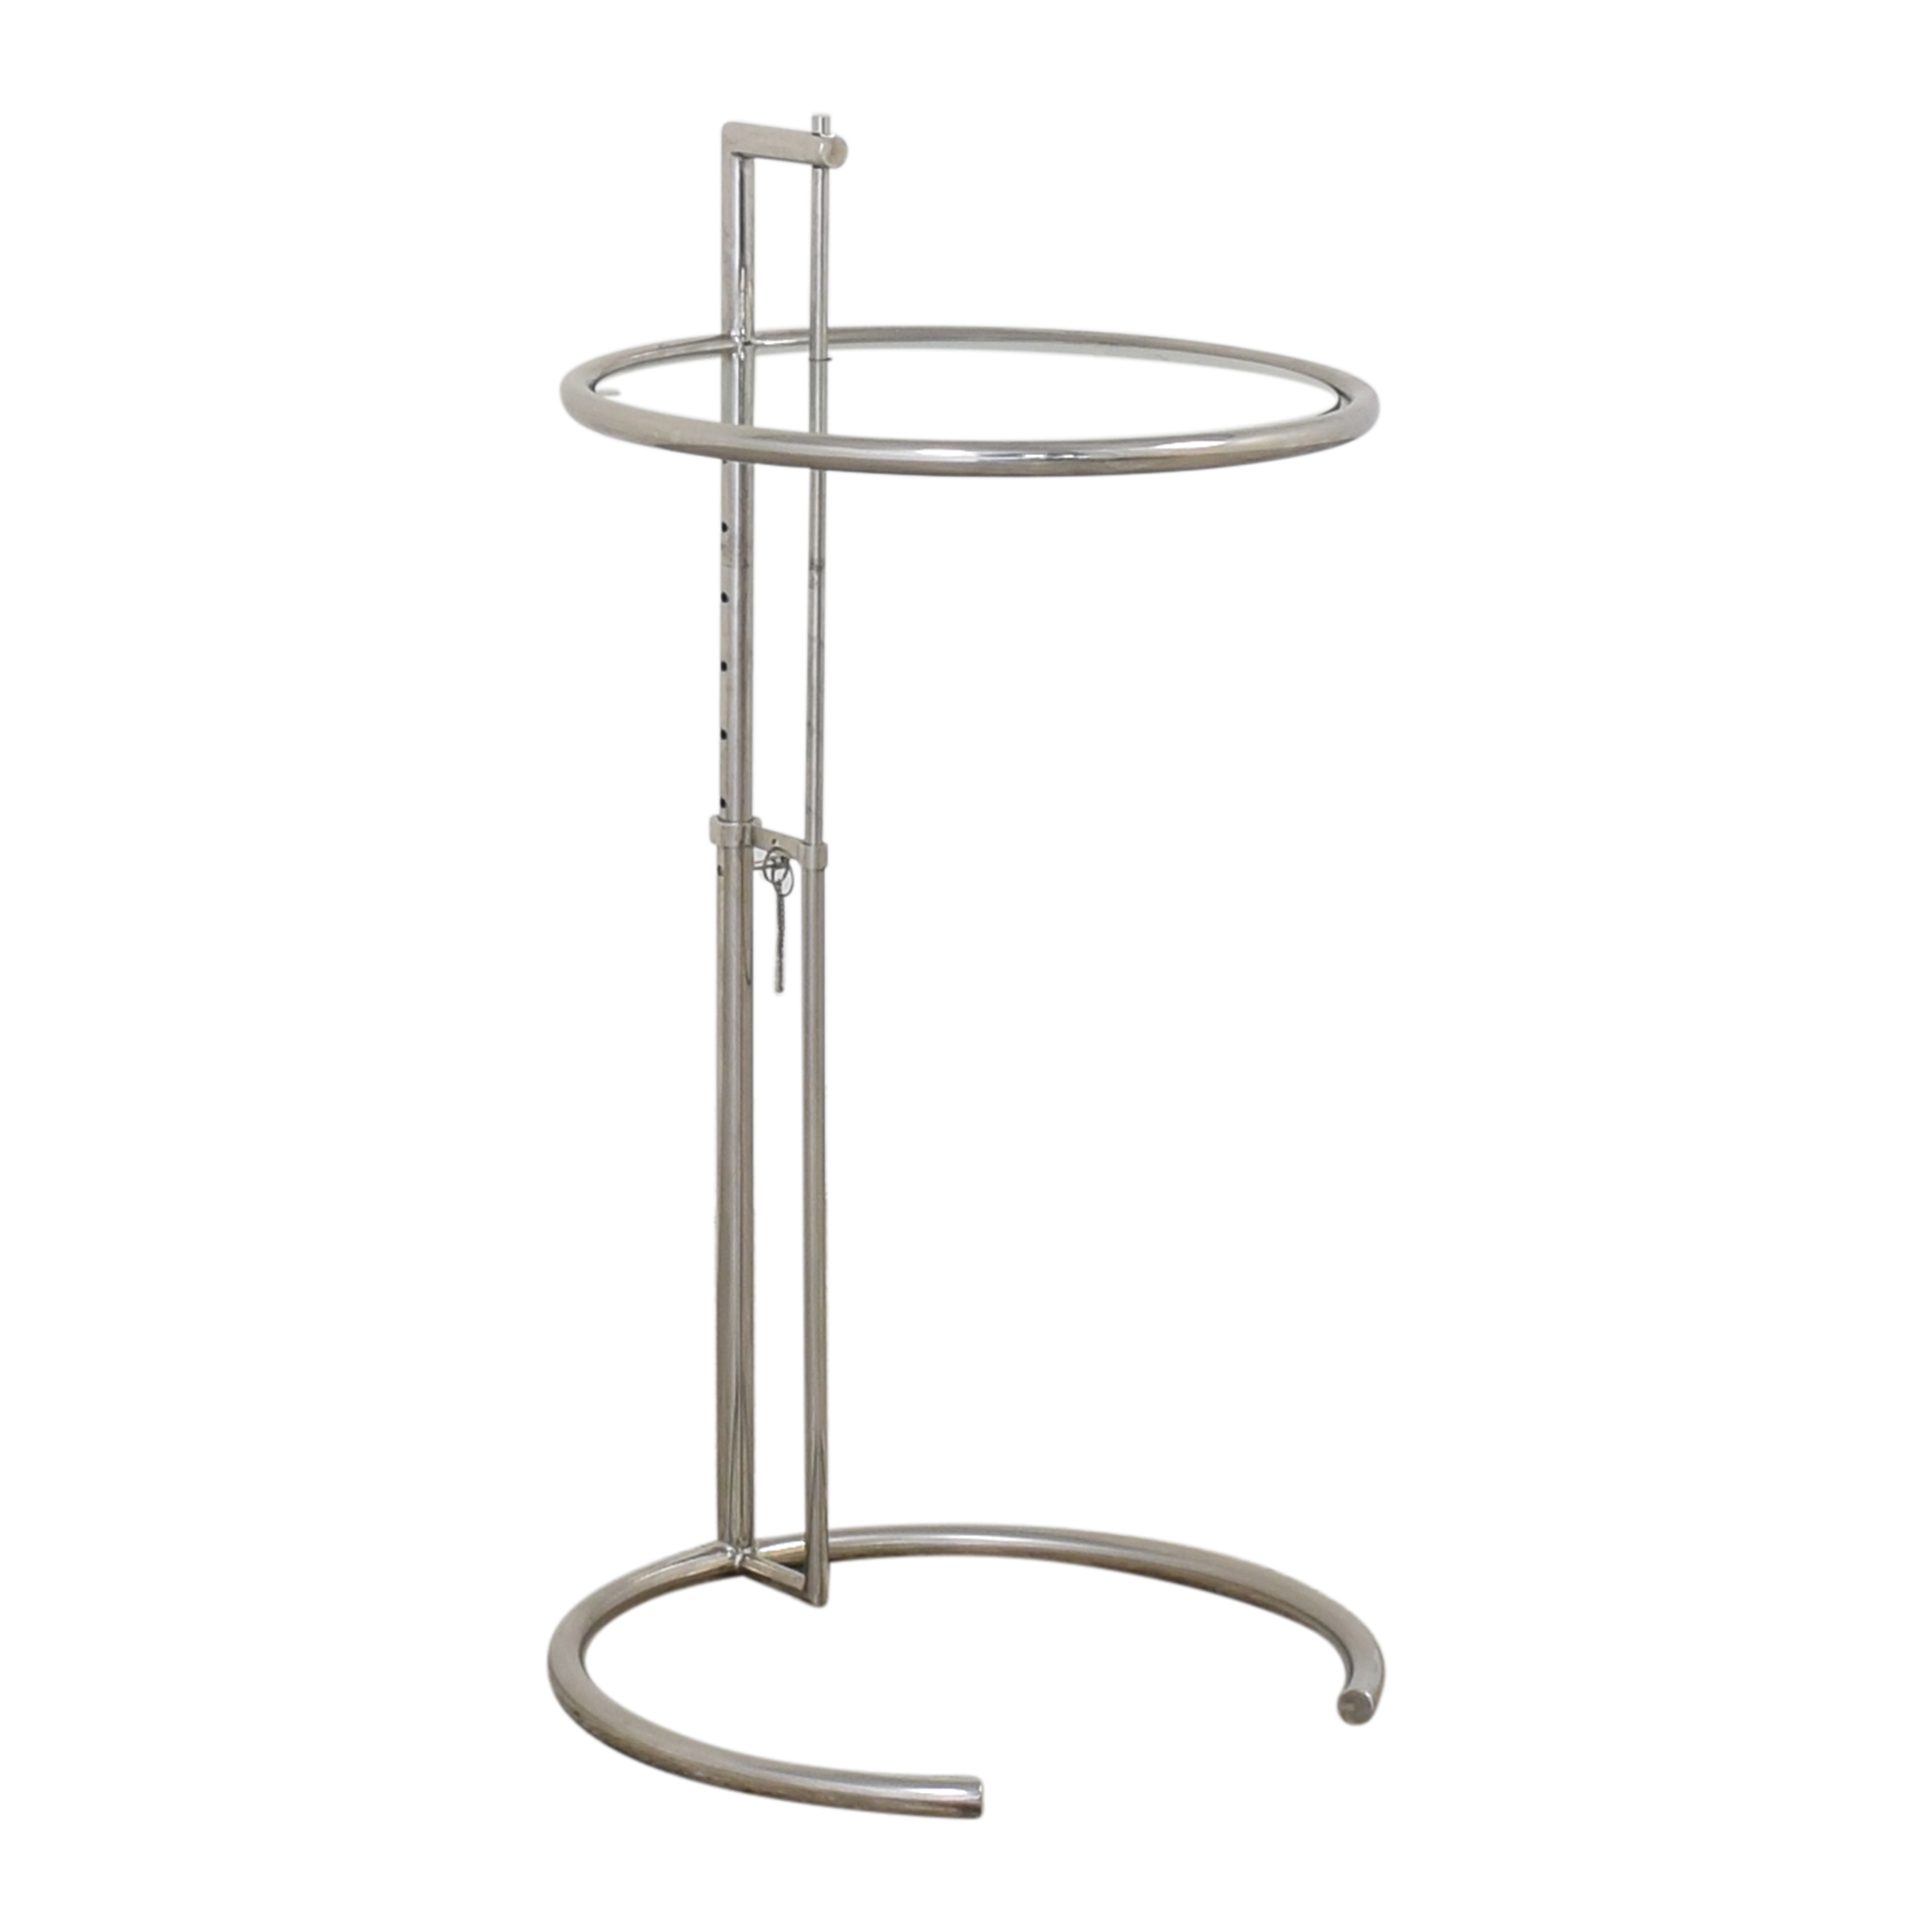 Vintage Eileen Gray-Style Chrome & Glass Side Table Accent Tables